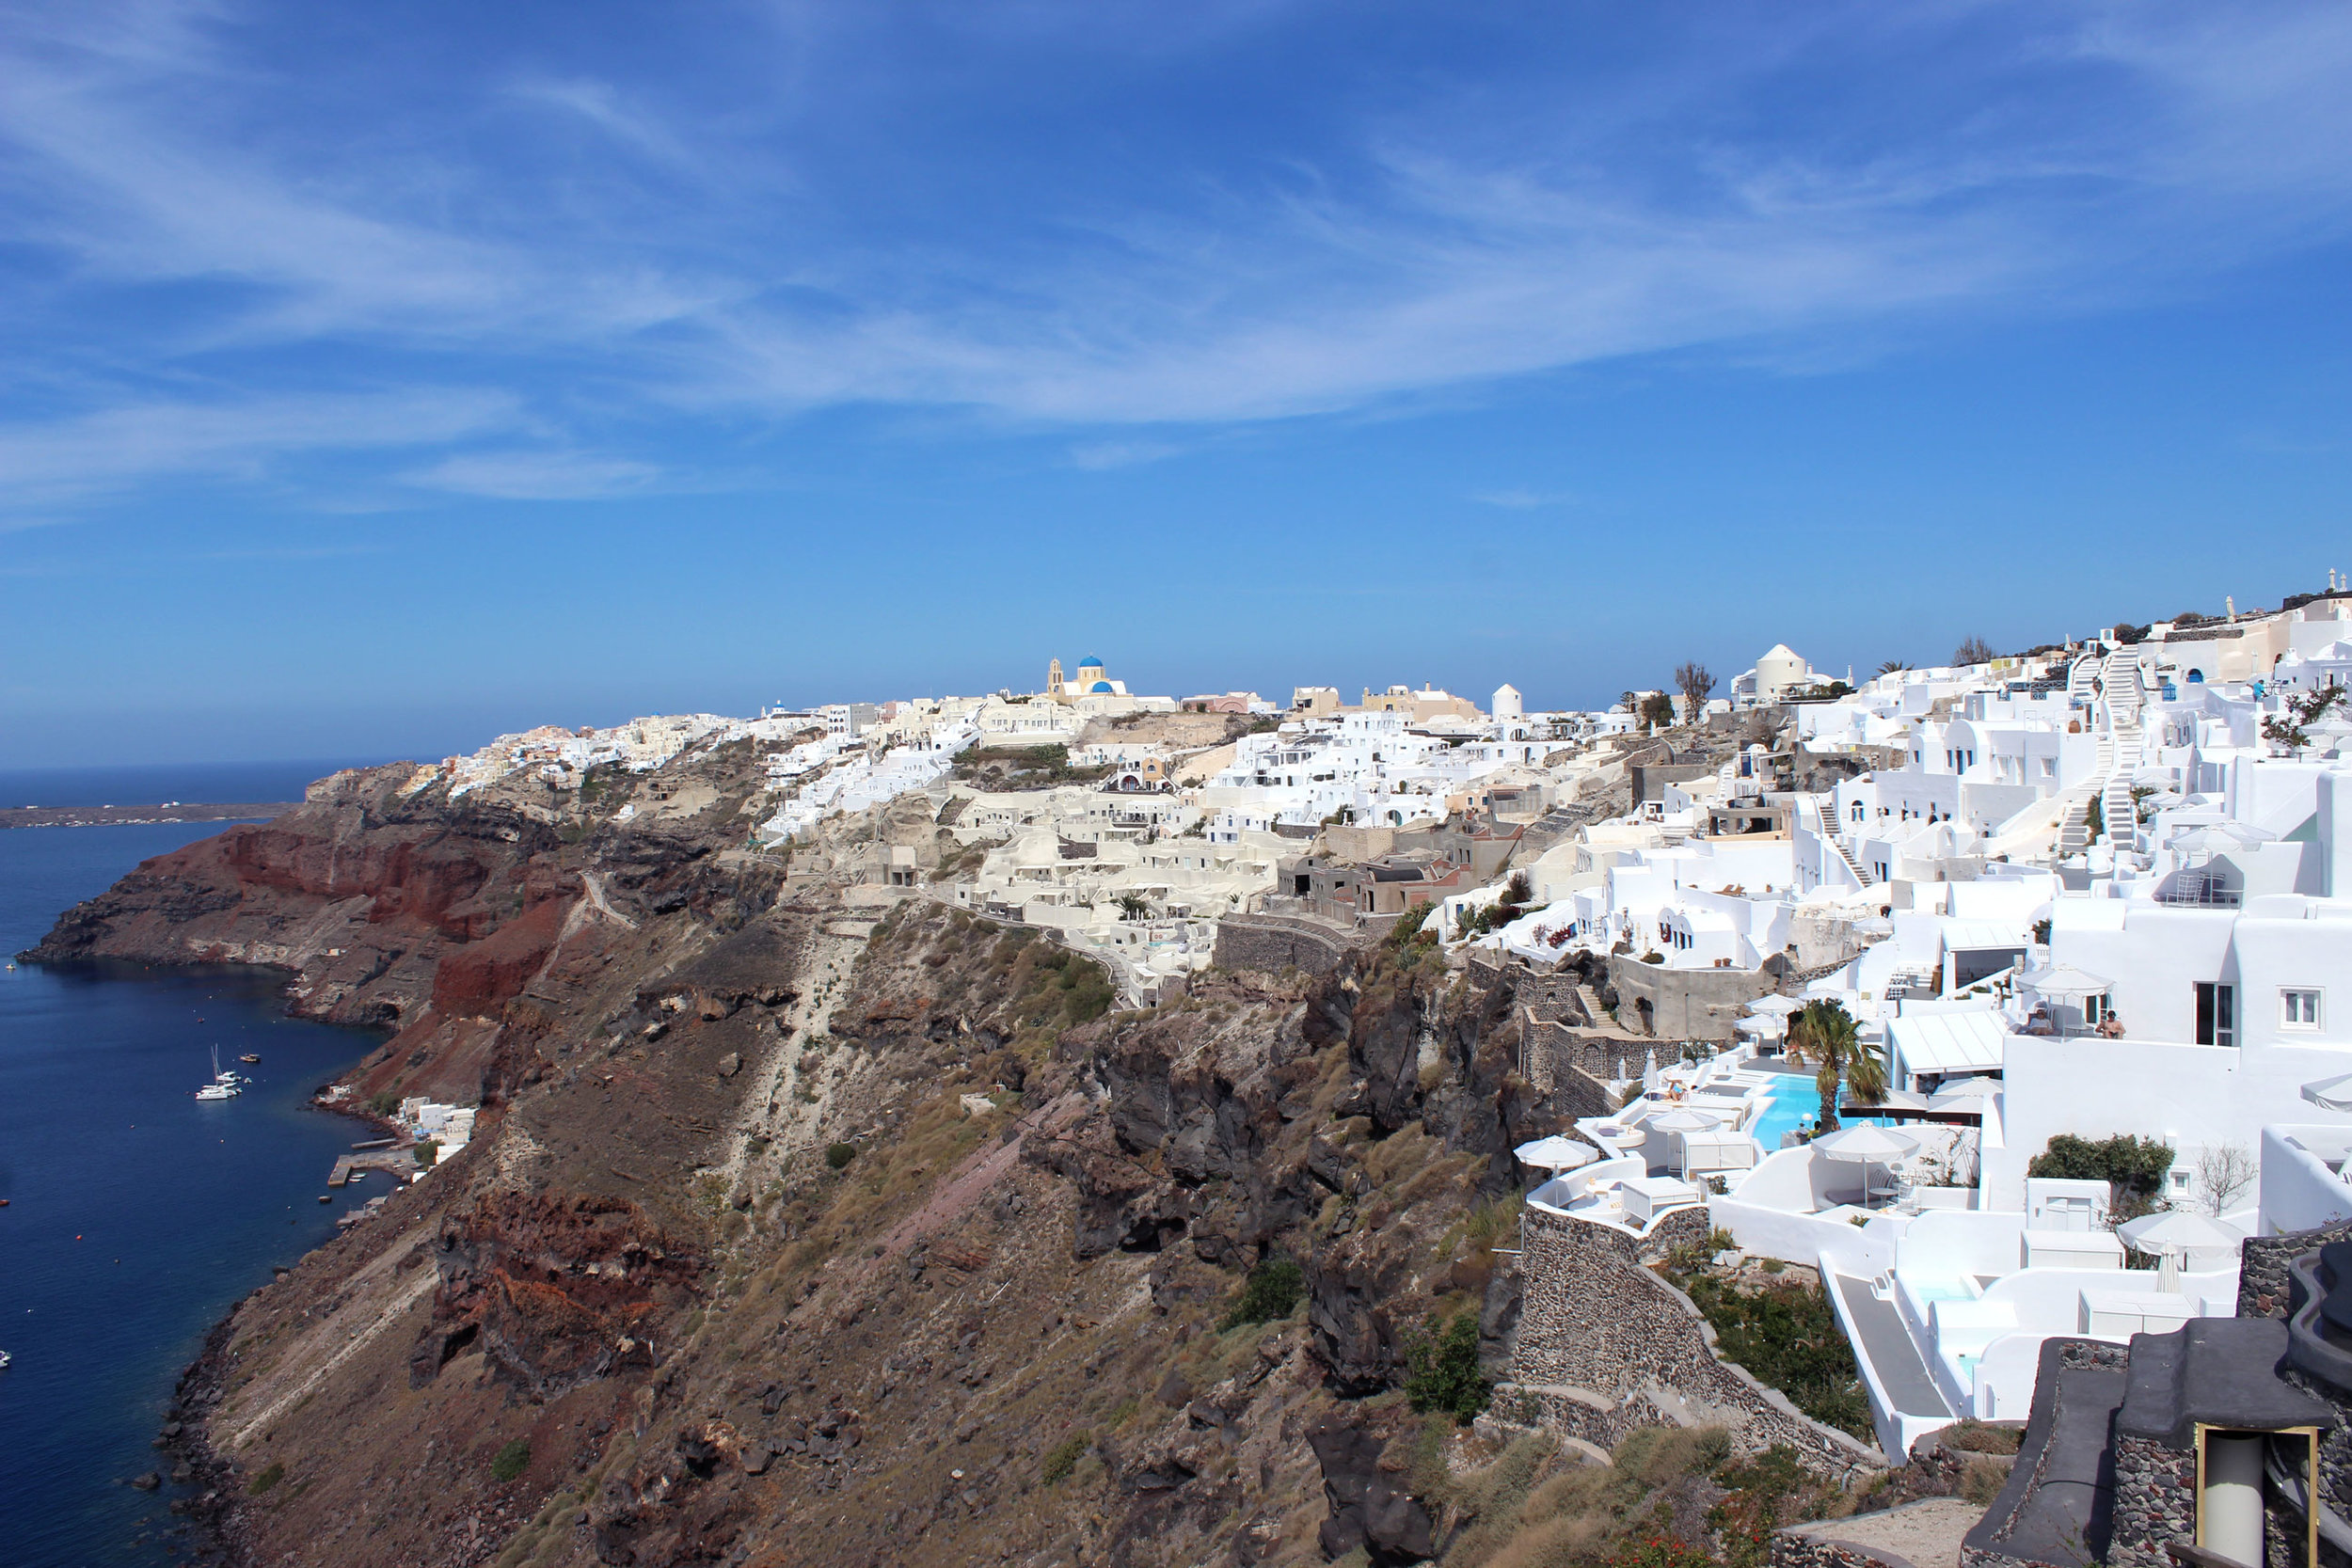 The view from our room at the Ikies Hotel in Santorini, Greece.